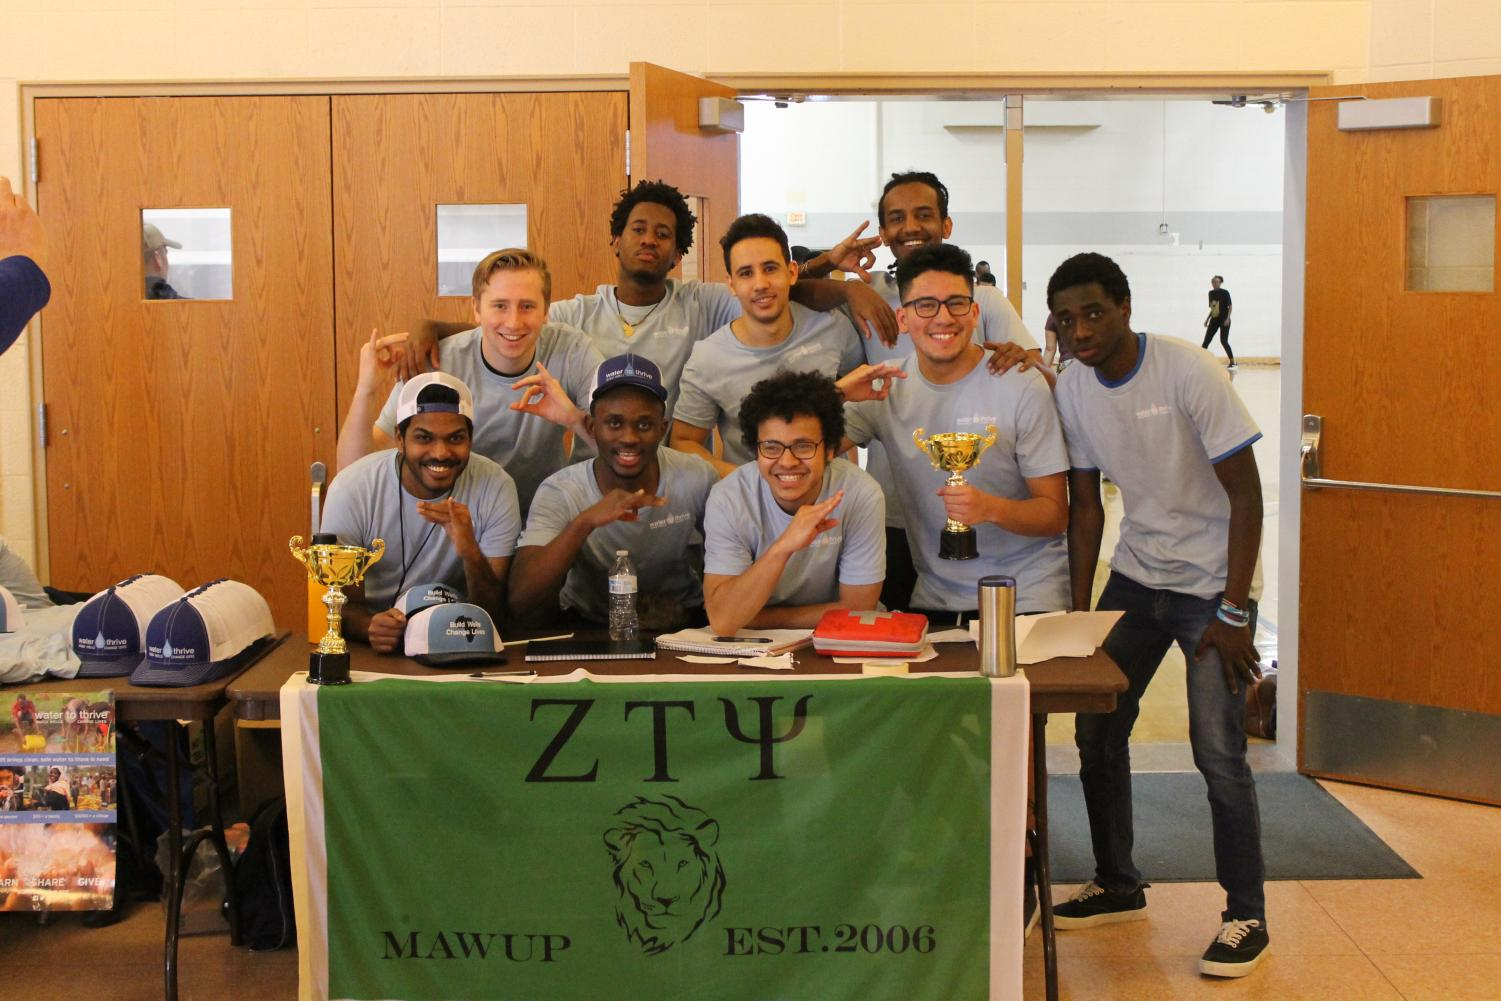 Zeta Tau Psi brothers opening the fundraiser soccer tournament for Water to Thrive.